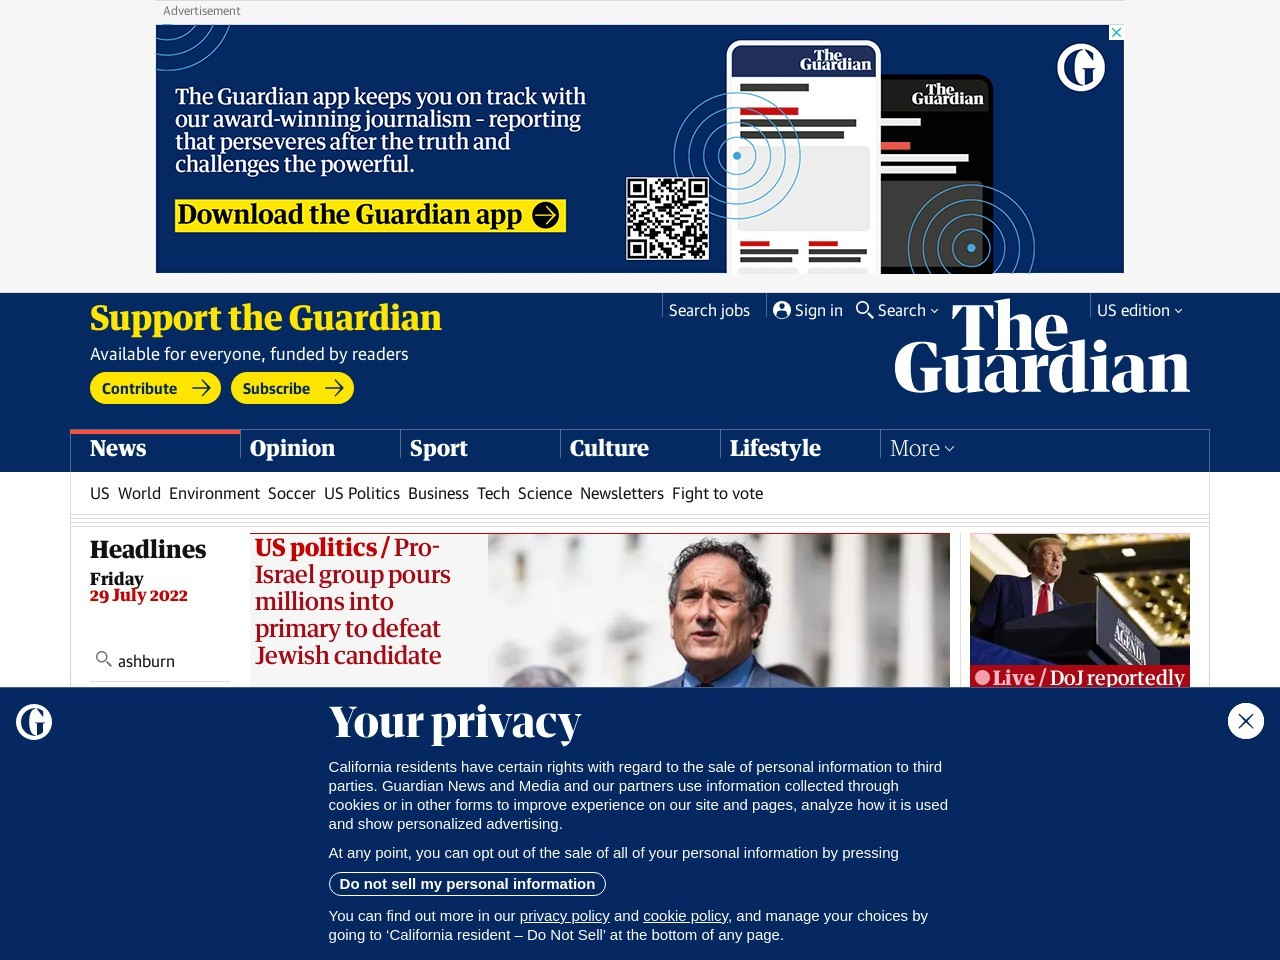 https://www.theguardian.com/business/2017/feb/18/interest-rates-bank-of-england-wont-rise-soon-kristin-forbes